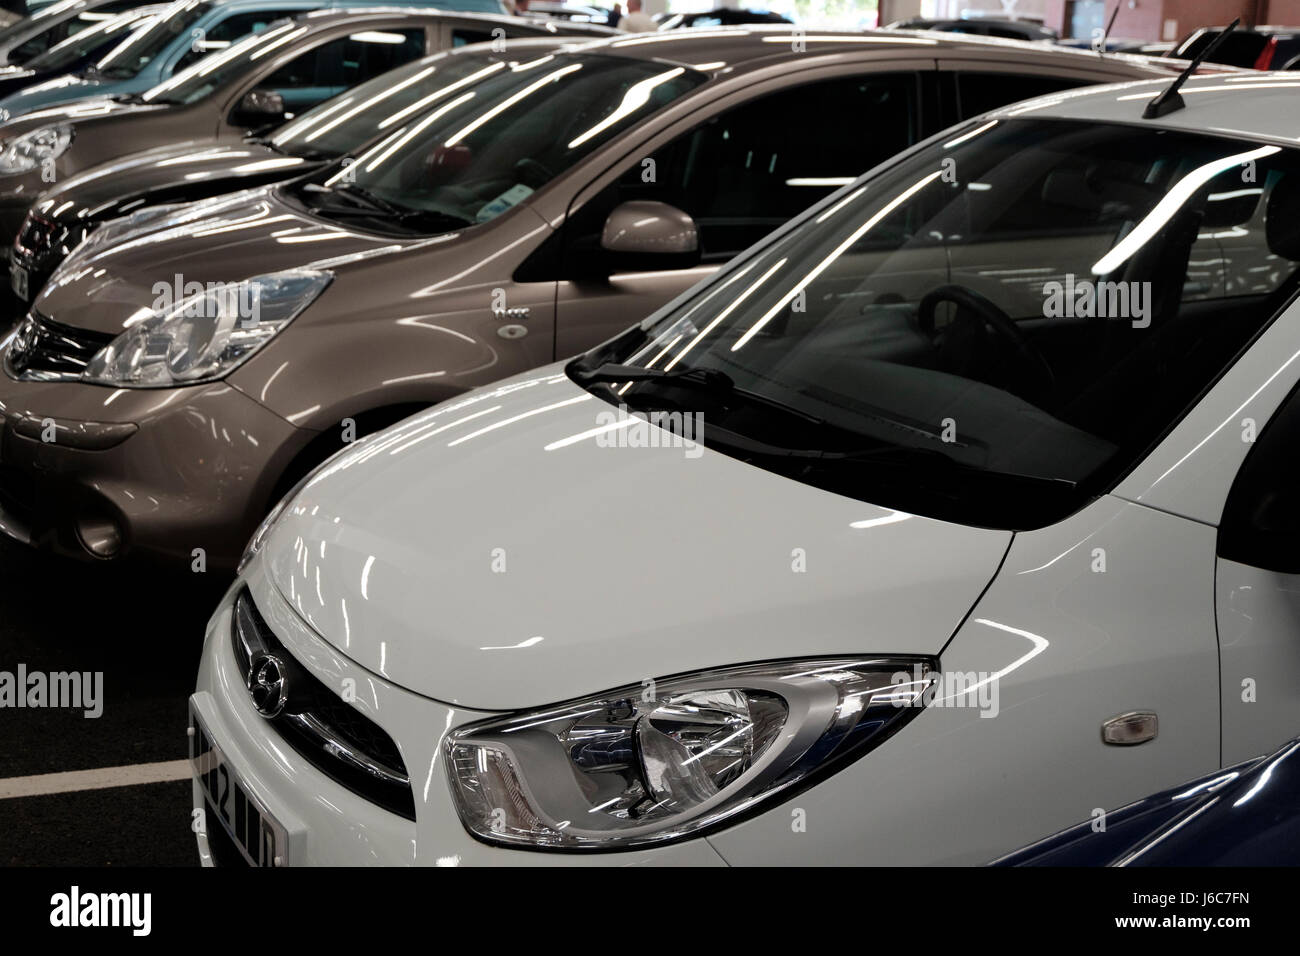 Row Of Cars Stock Photos & Row Of Cars Stock Images - Alamy